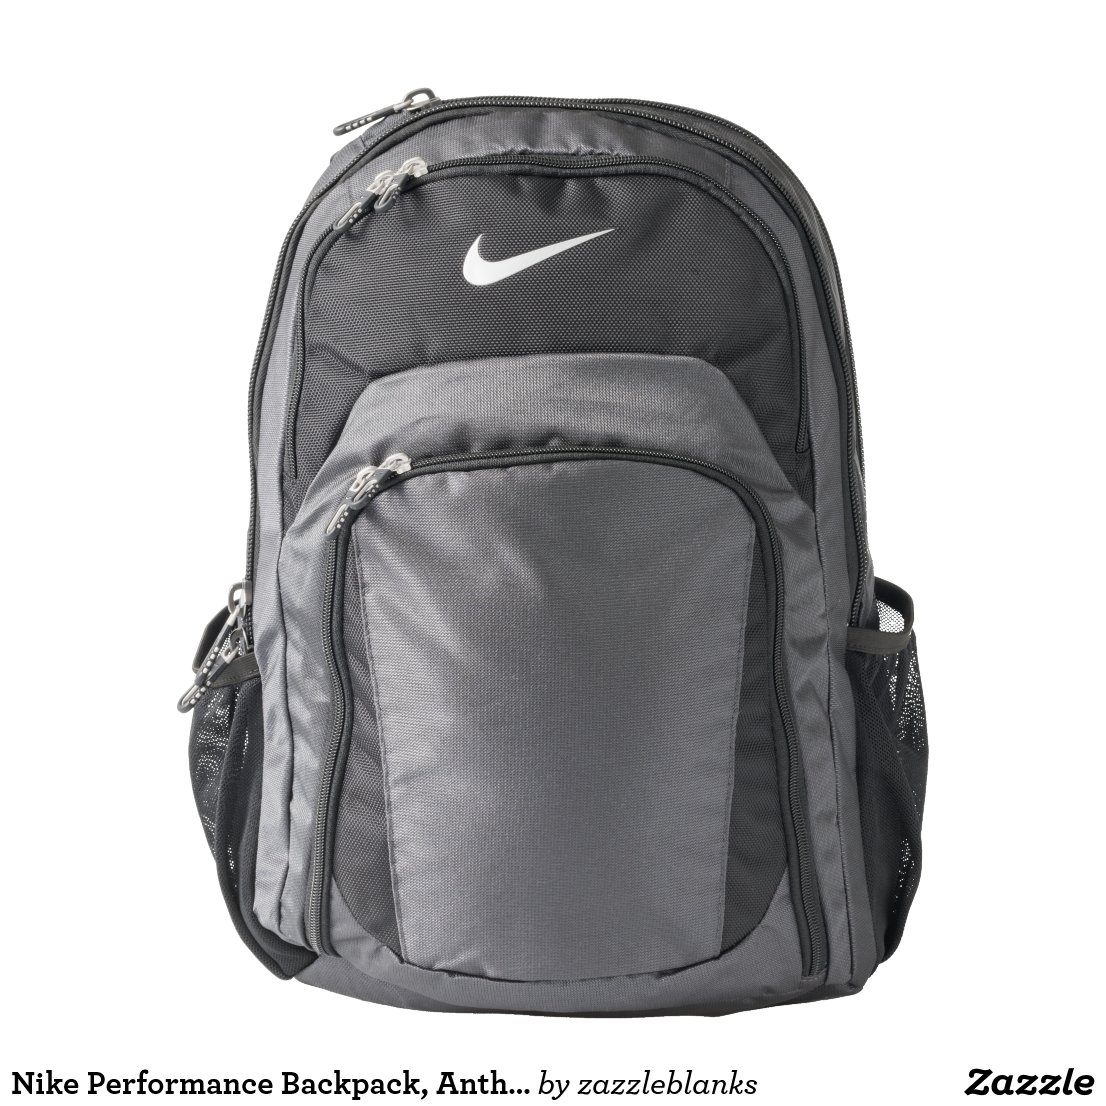 Nike Performance Backpack, Anthracite/Black